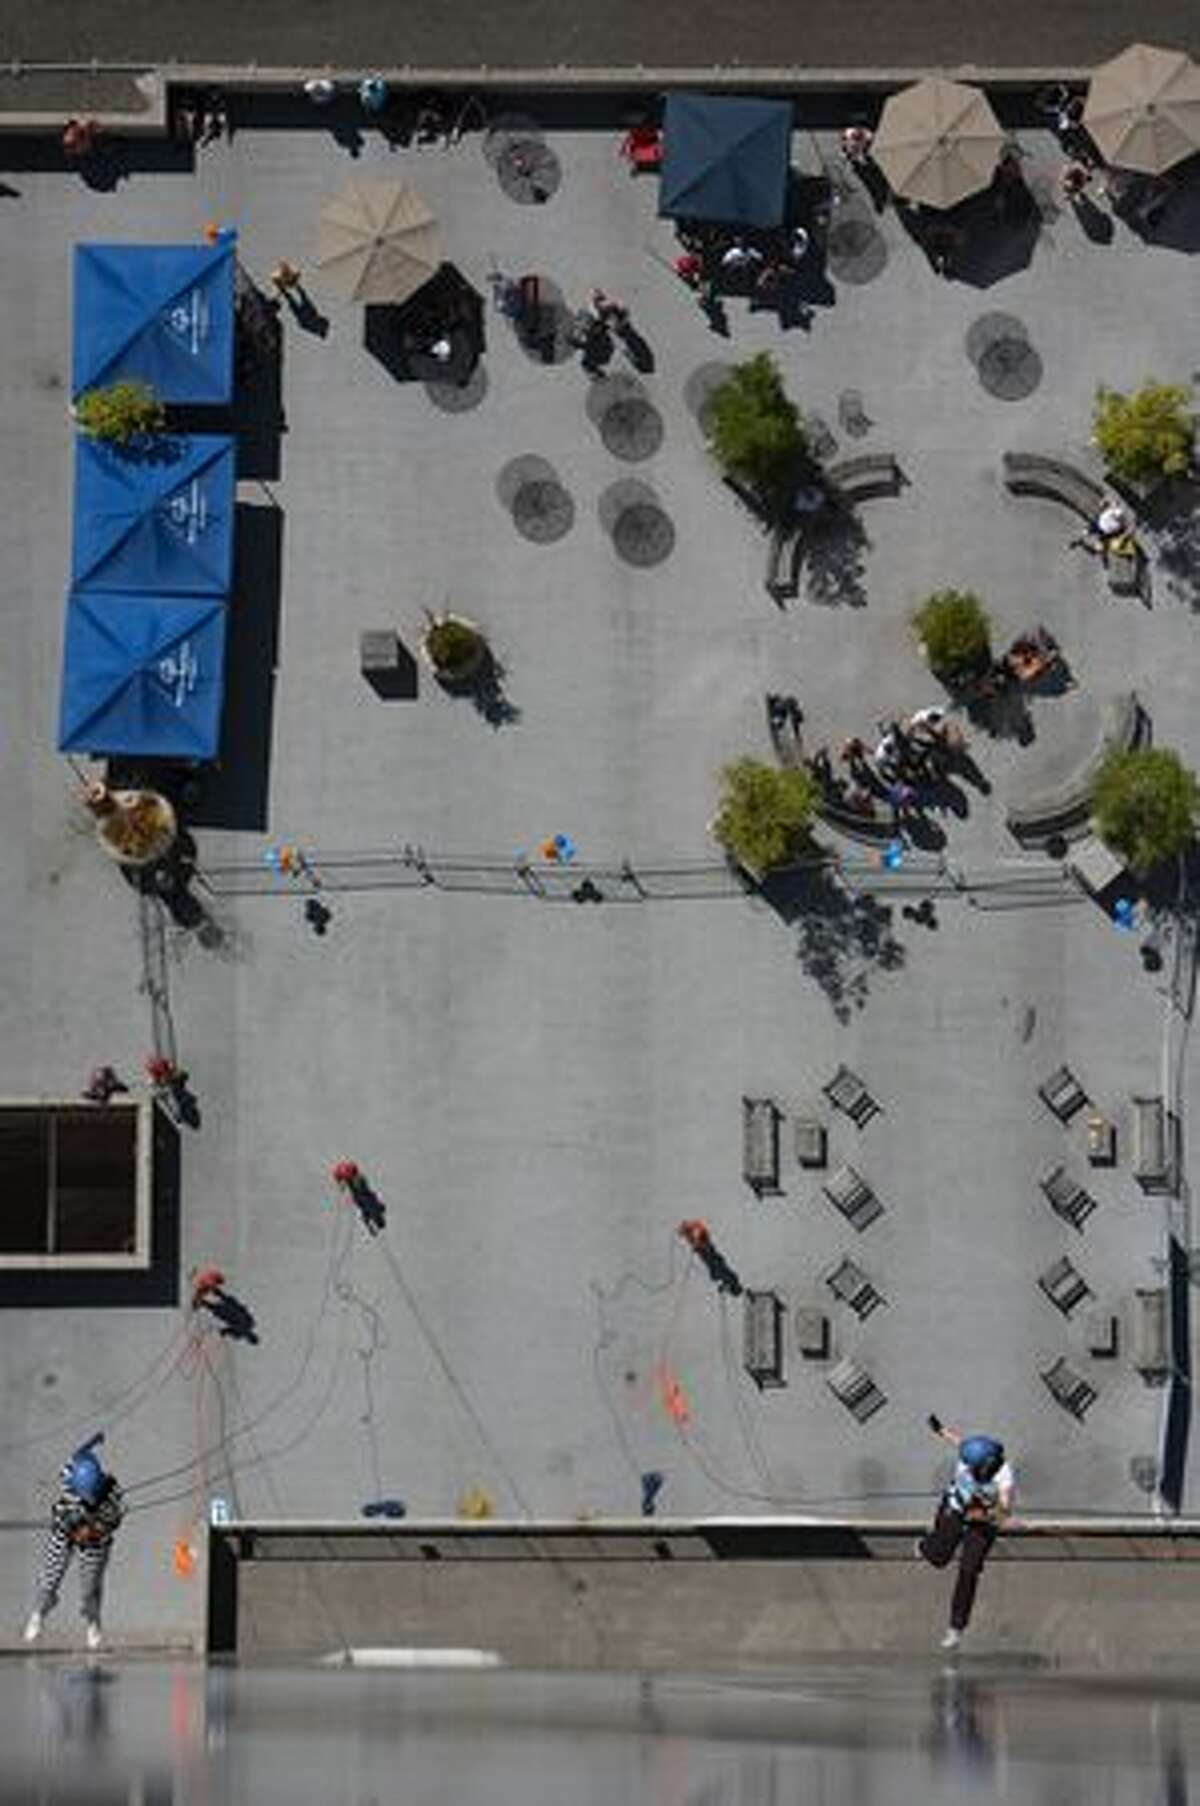 Rappellers descend during